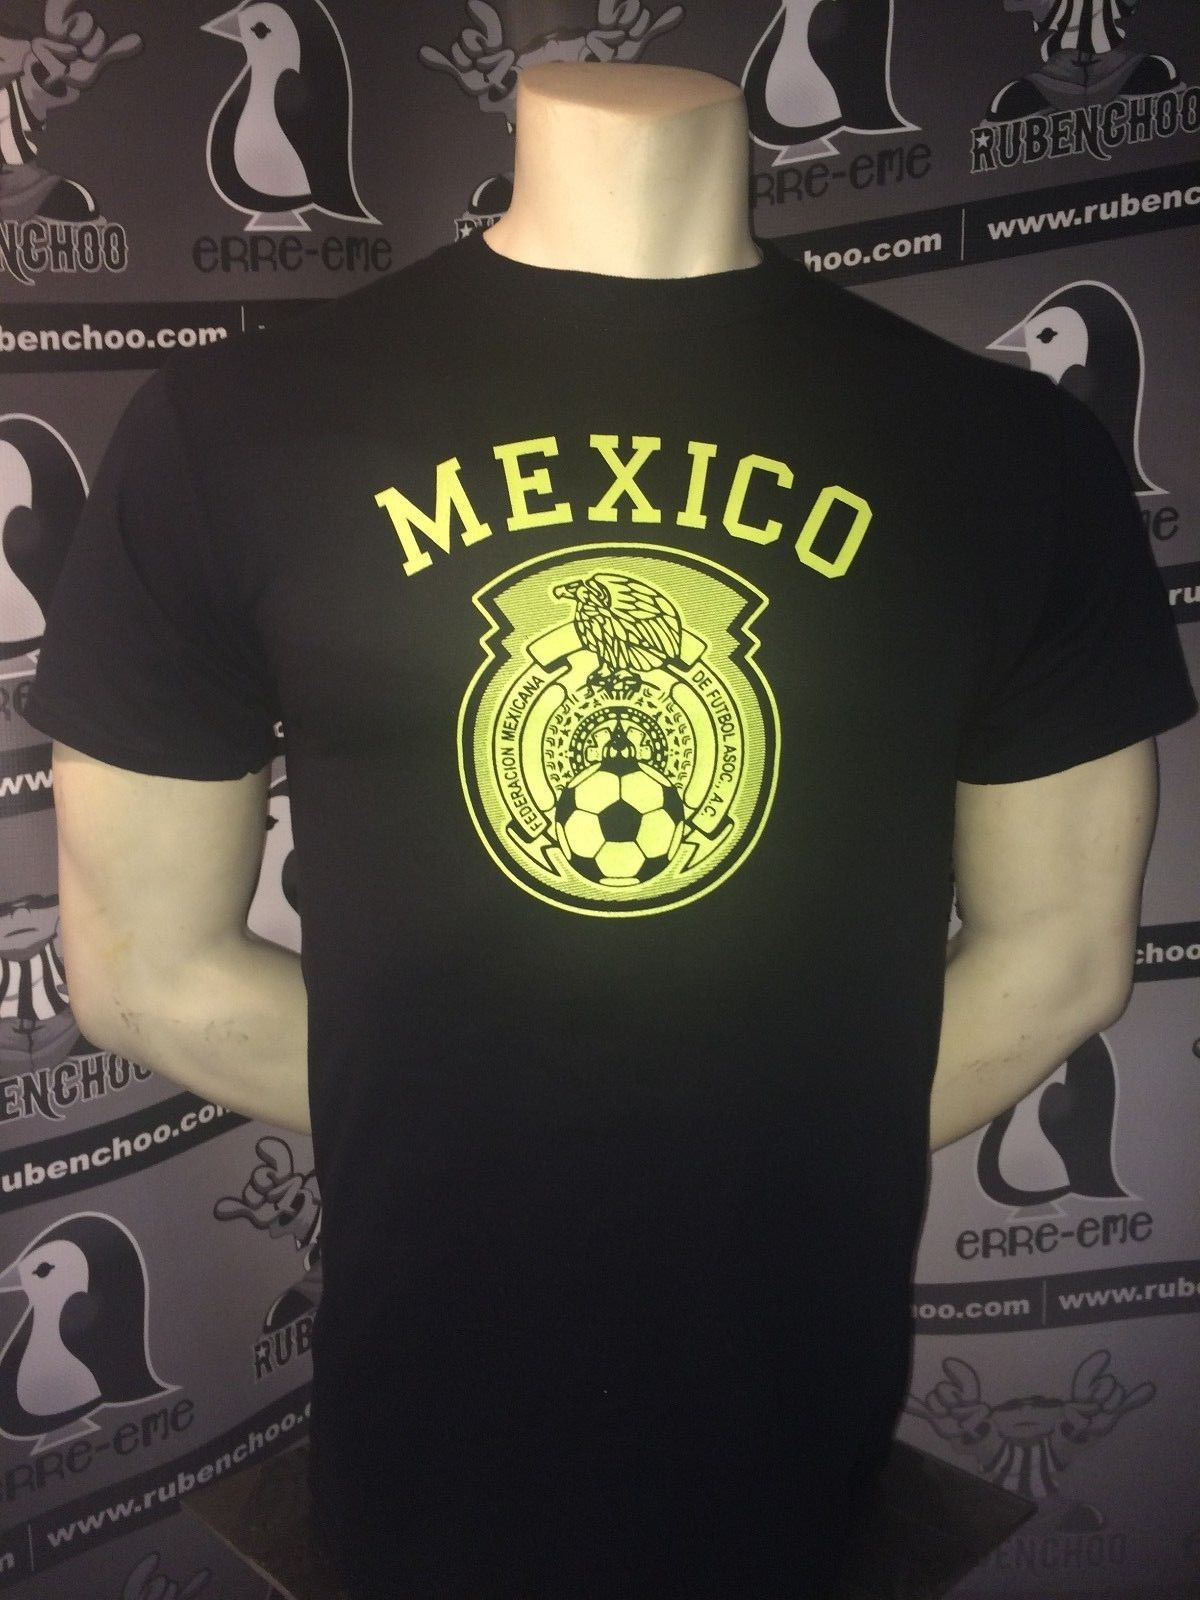 4a13f55d5be futbol t-shirt - Chinese Goods Catalog - ChinaPrices.net